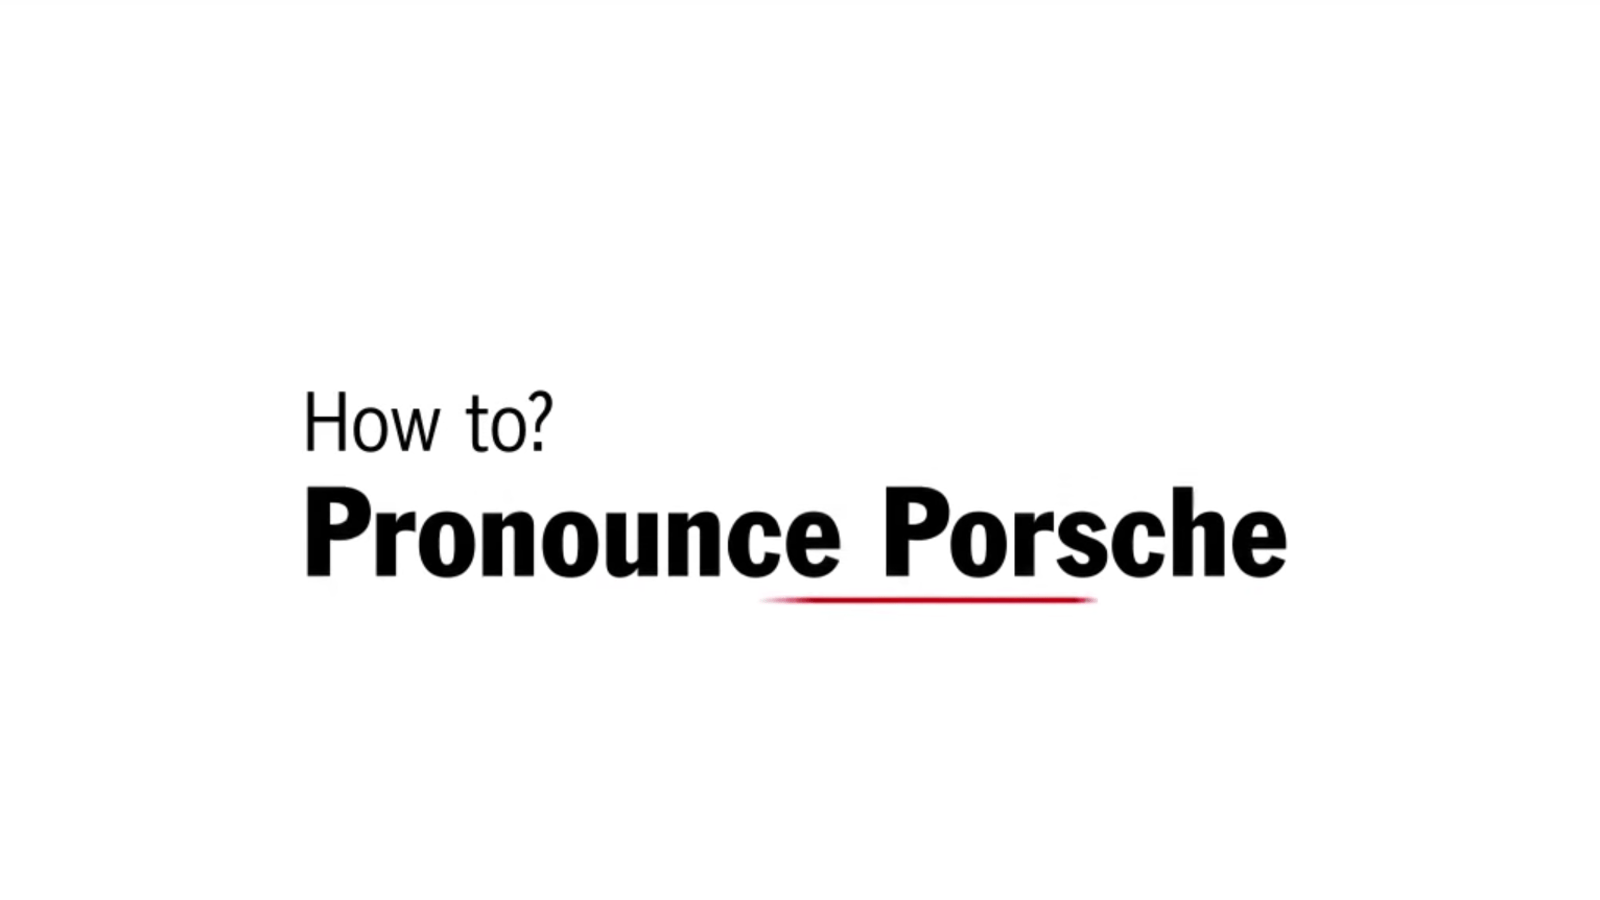 About Goddamn Time Porsche Made A Video Showing Idiots